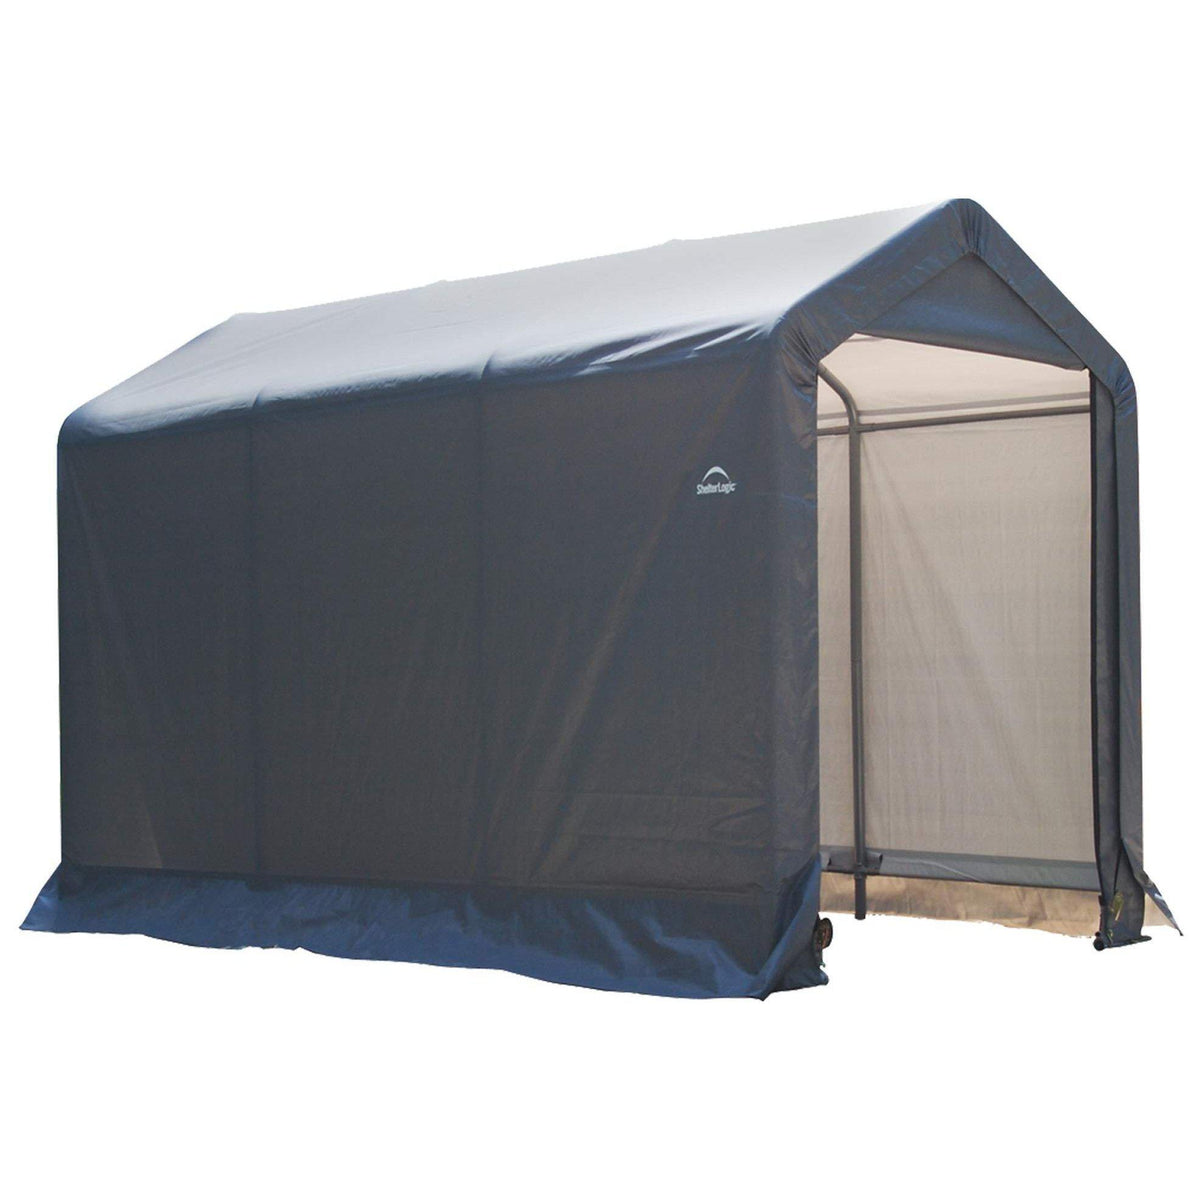 6Ft x 10 Ft ShelterLogic Shed-in-a-Box with Auger Anchors, Peak, Gray